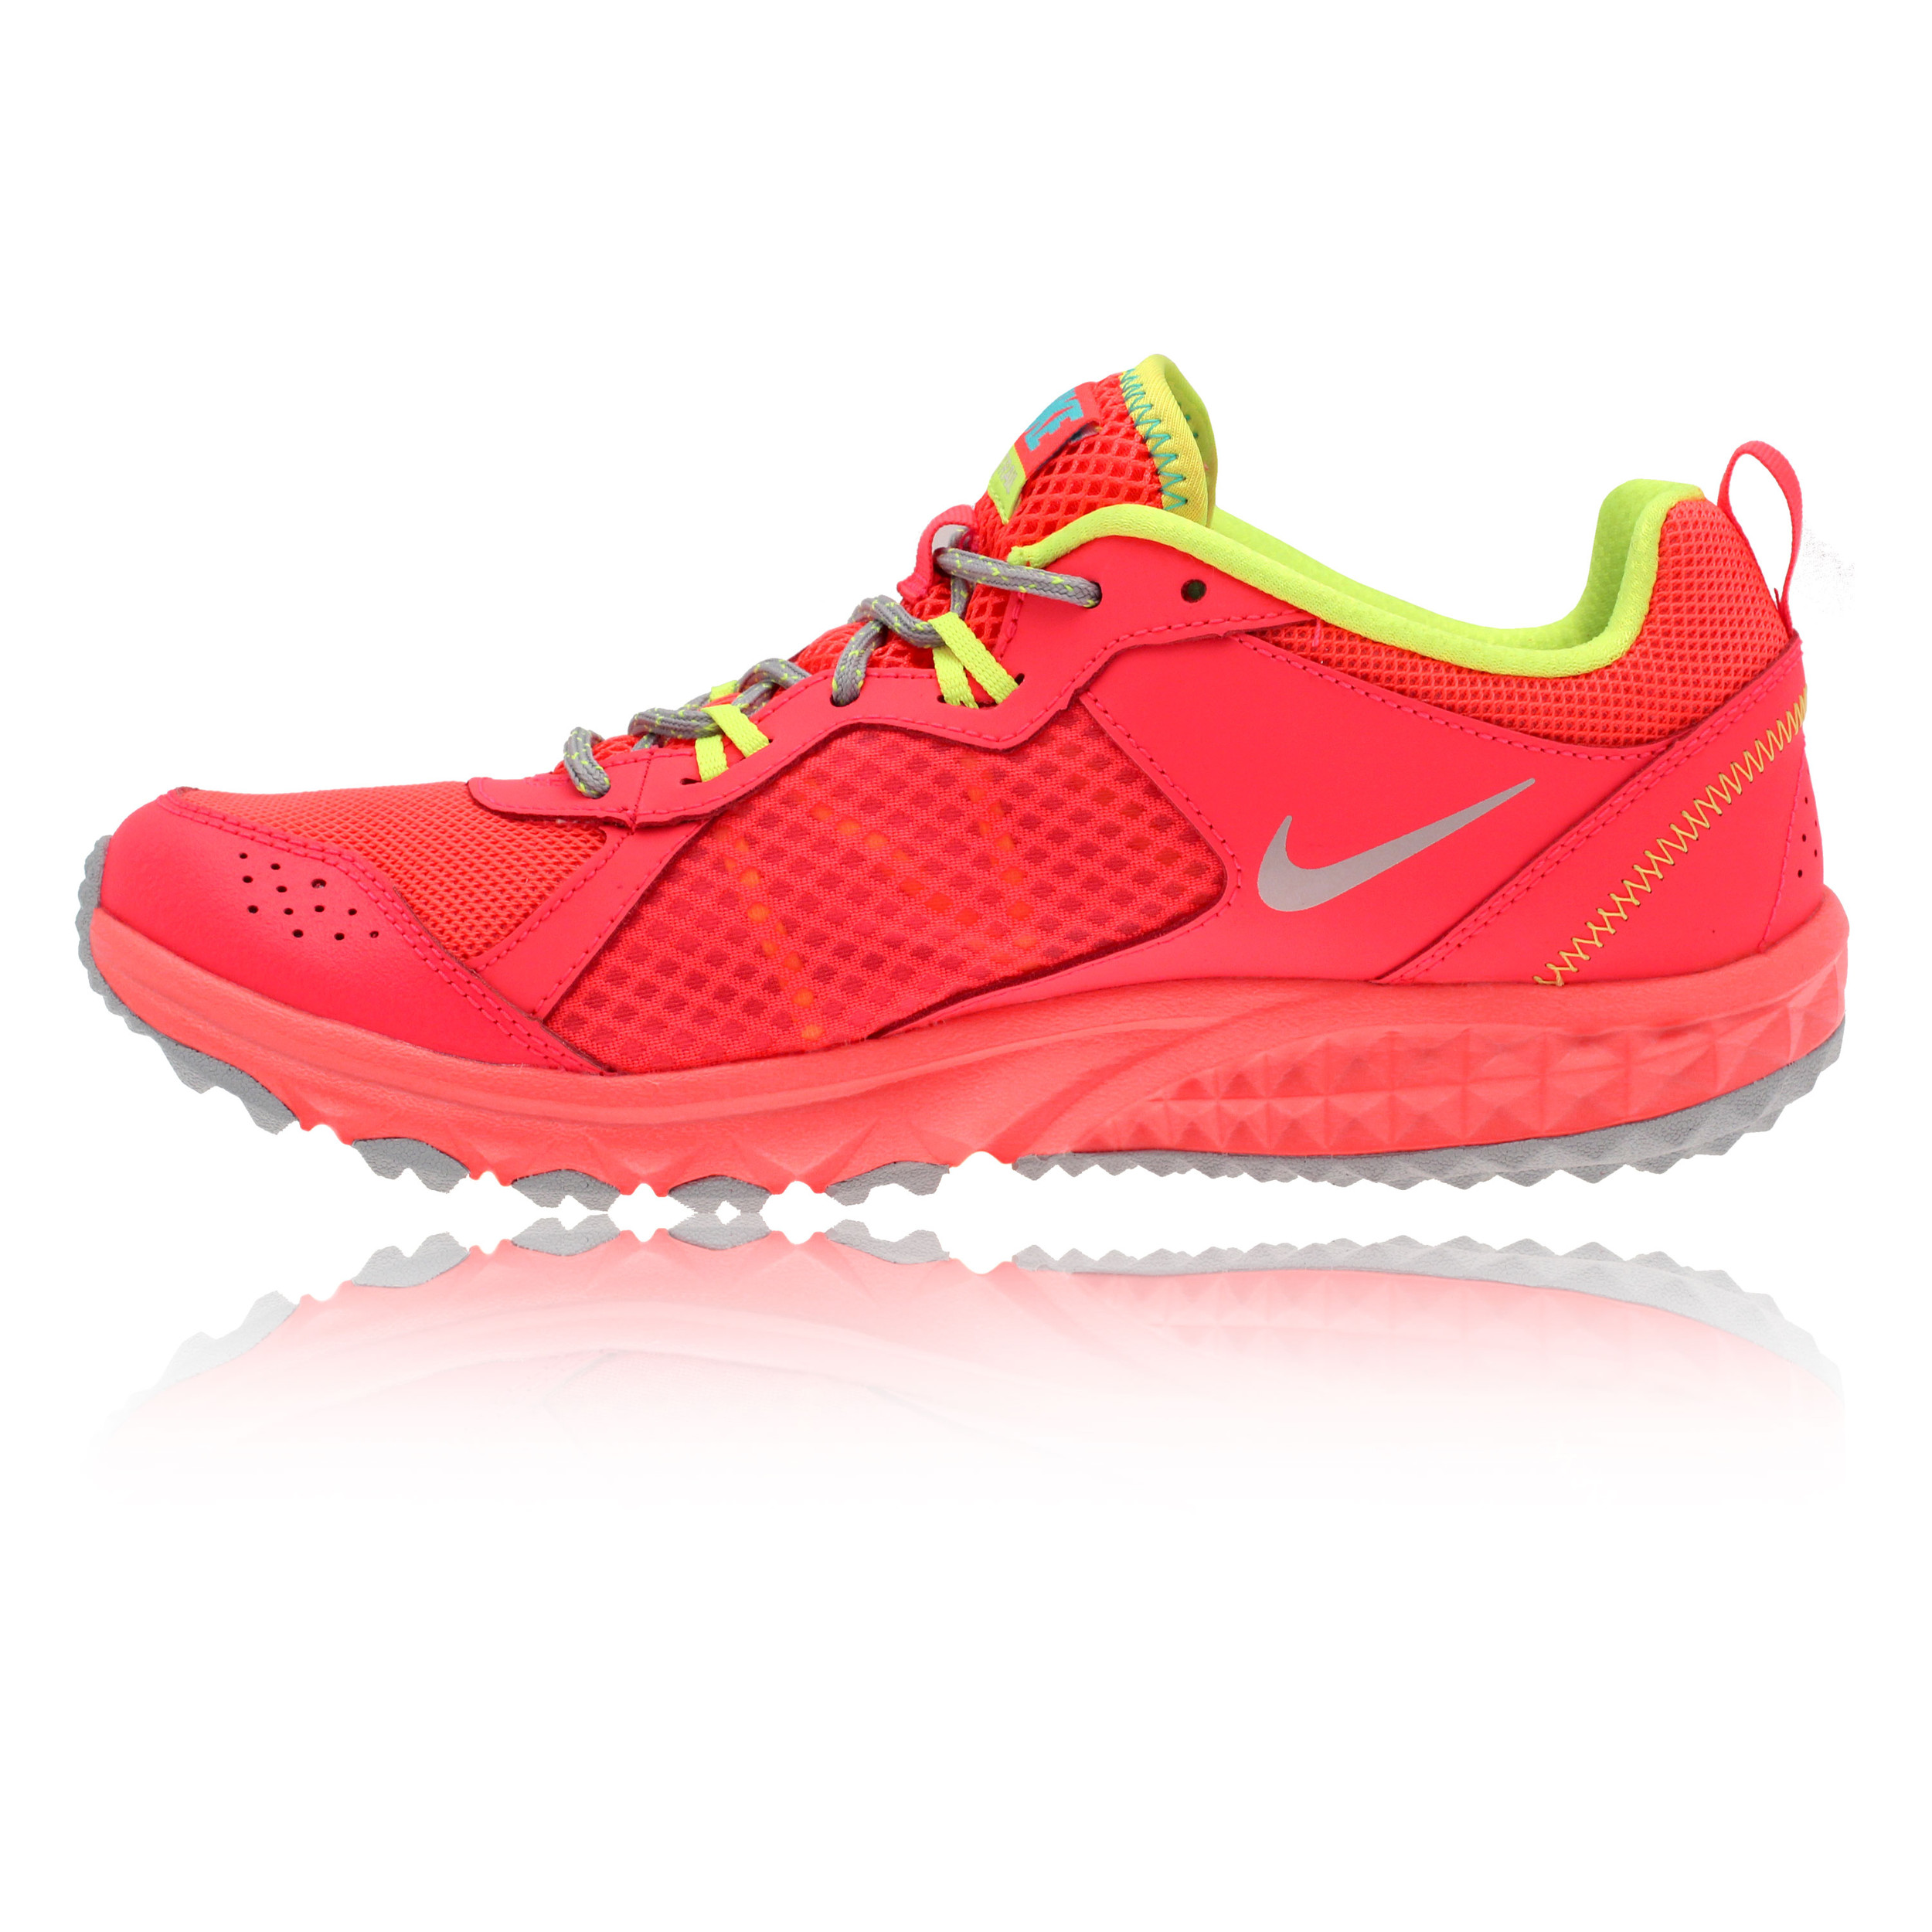 Luxury Nike Women39s Wild Trail Running Shoes  40 Off  SportsShoescom